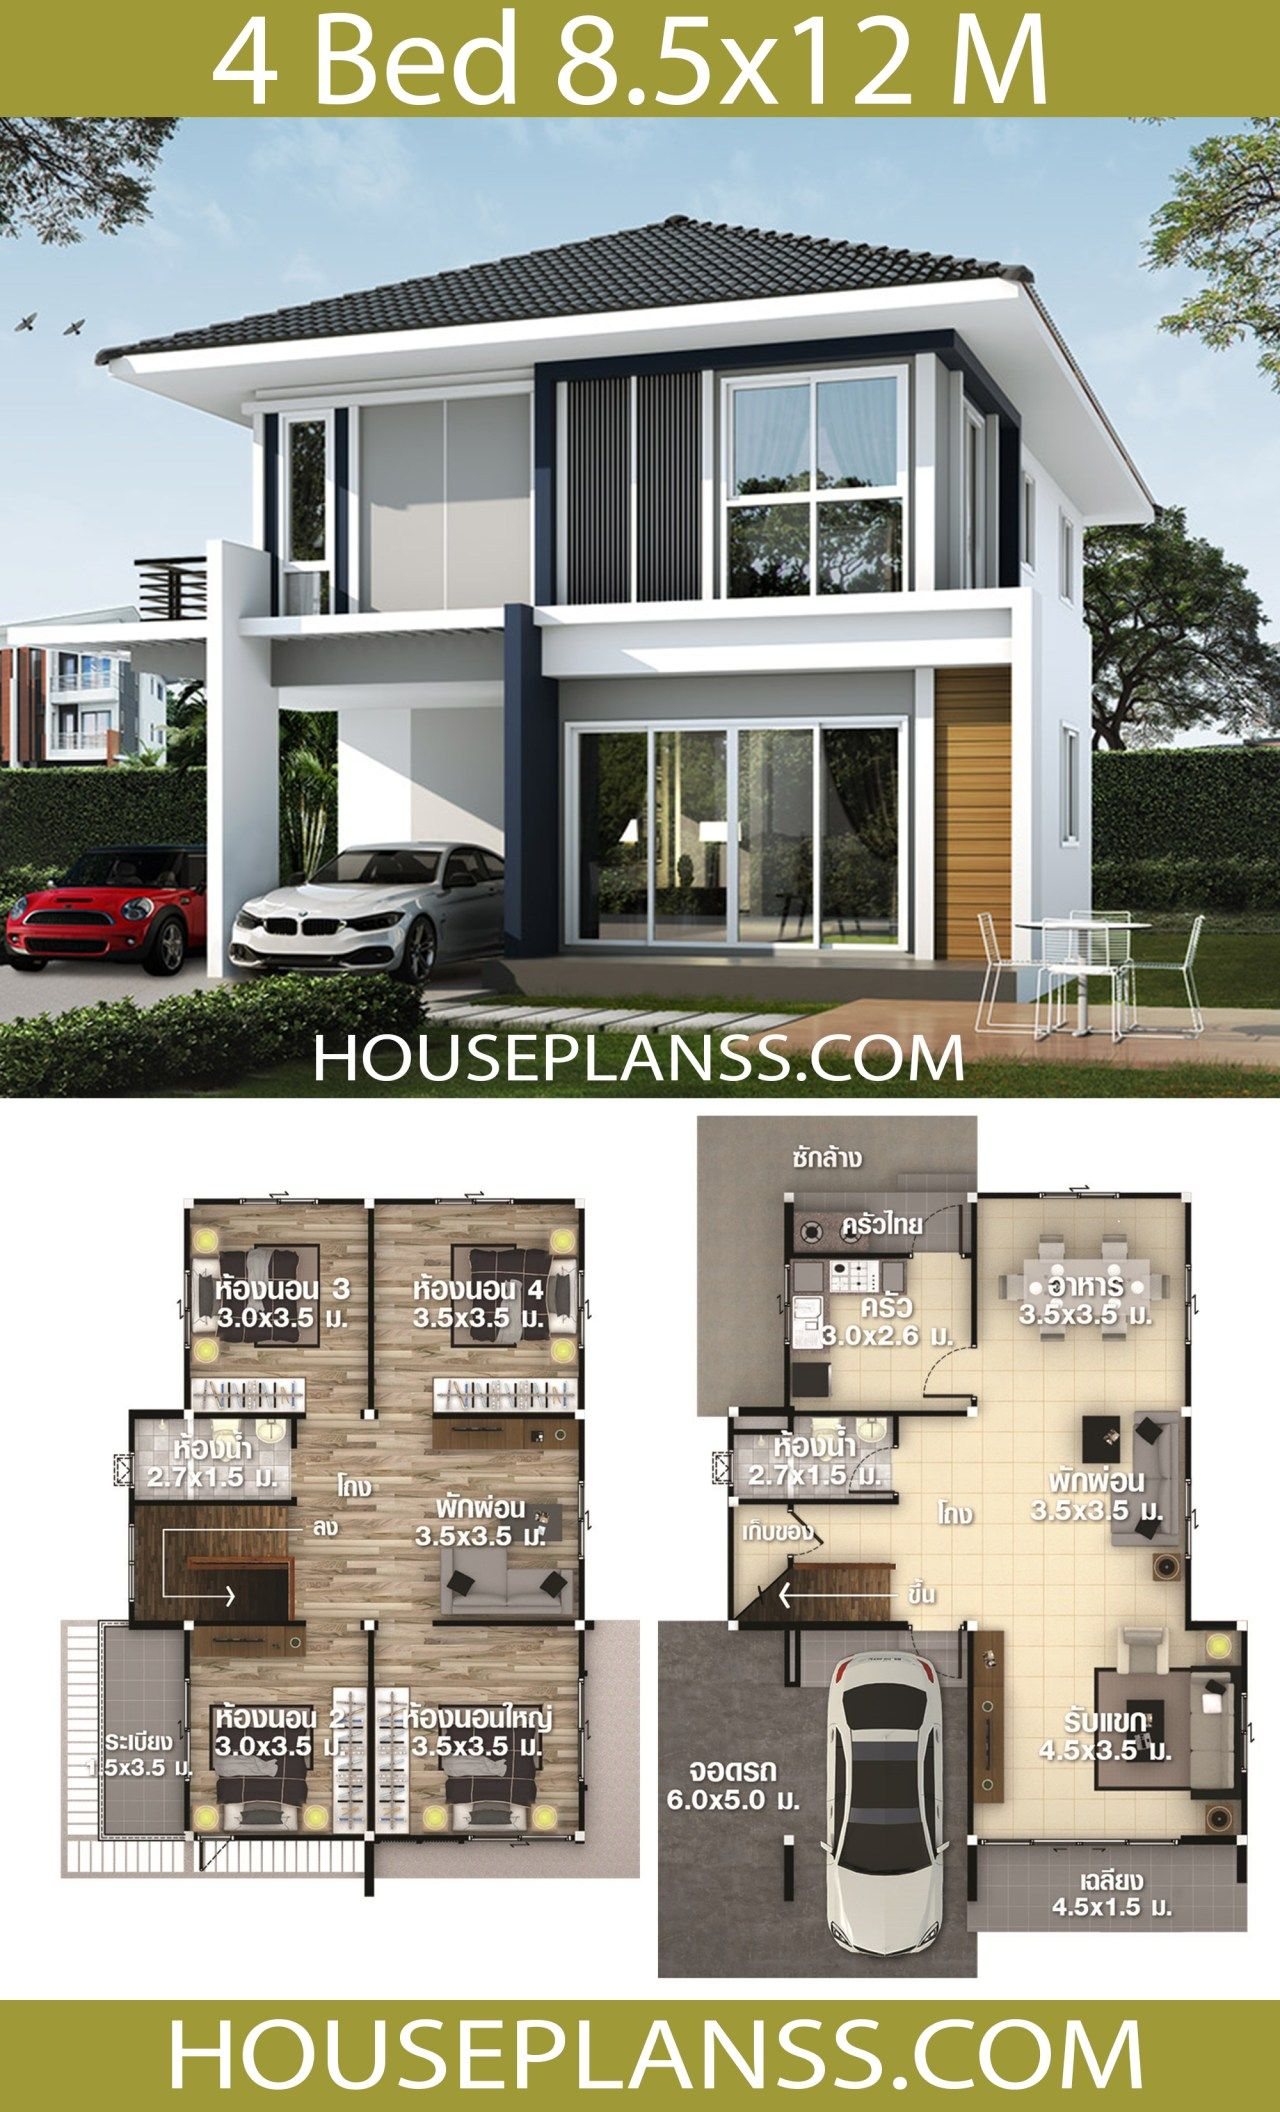 House Design Plans Idea 8 5x12 With 4 Bedrooms Home Ideas Family House Plans Model House Plan Modern Family House